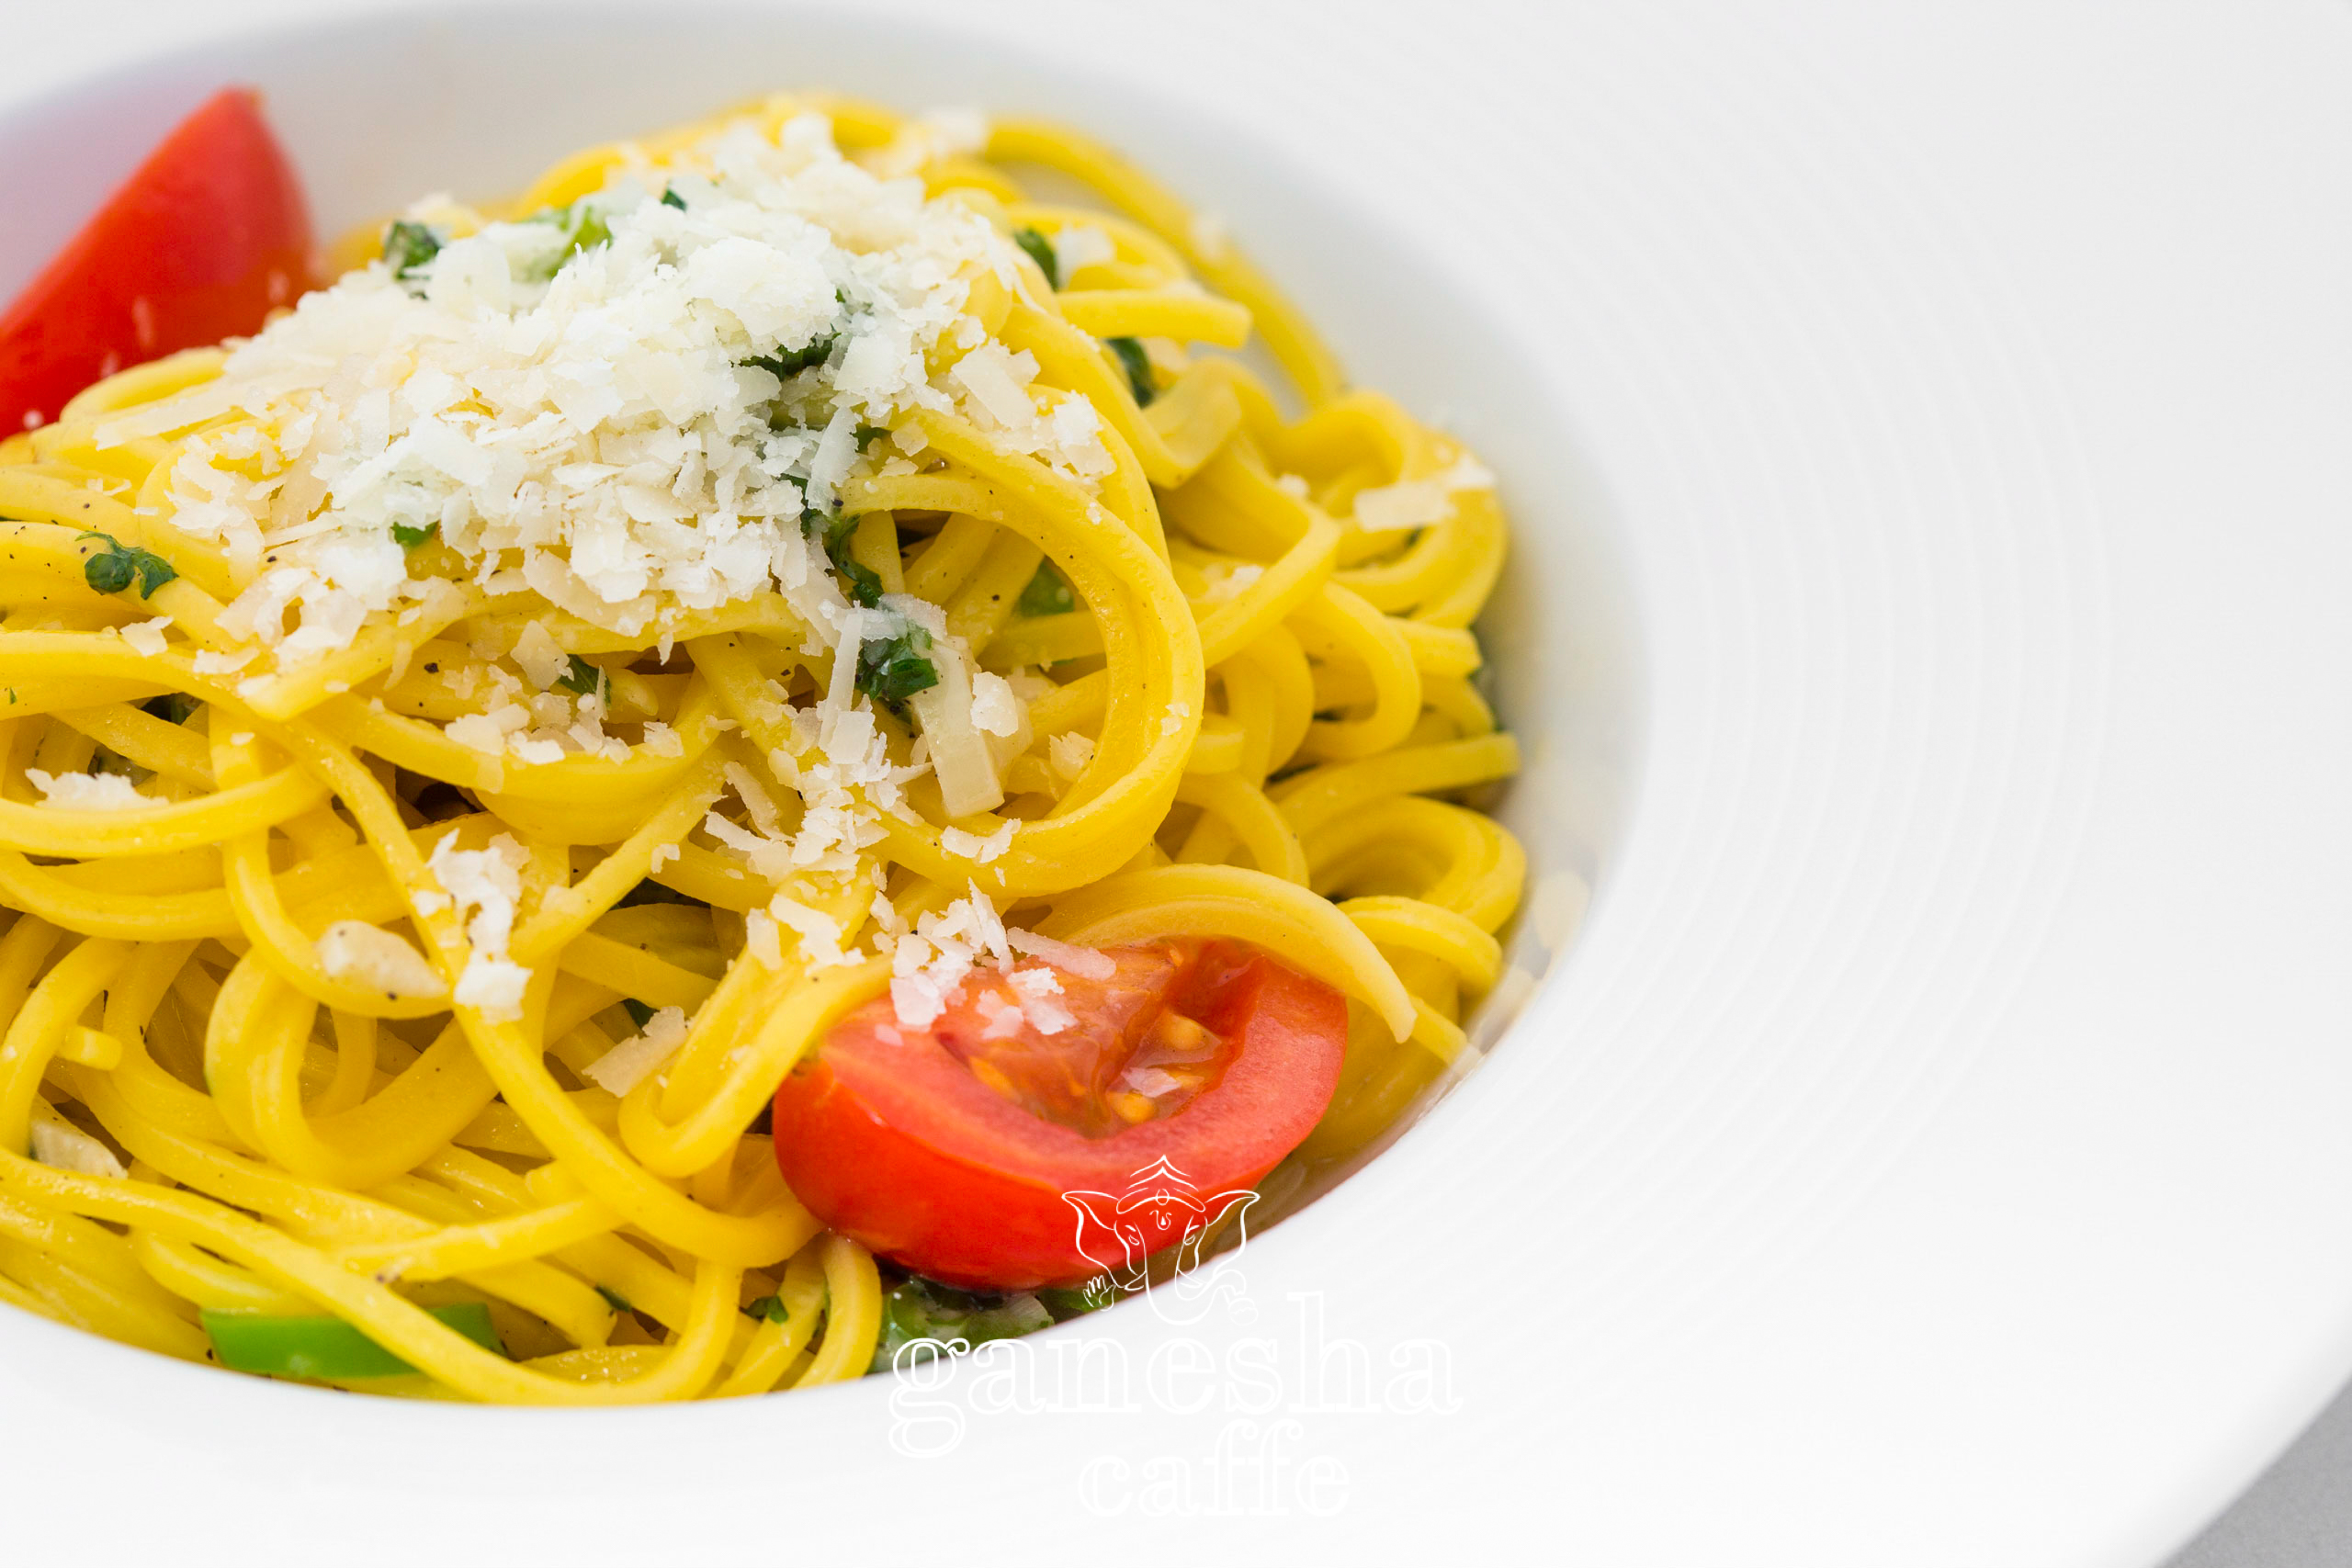 Paste Aglio, Olio E Pepperoncino